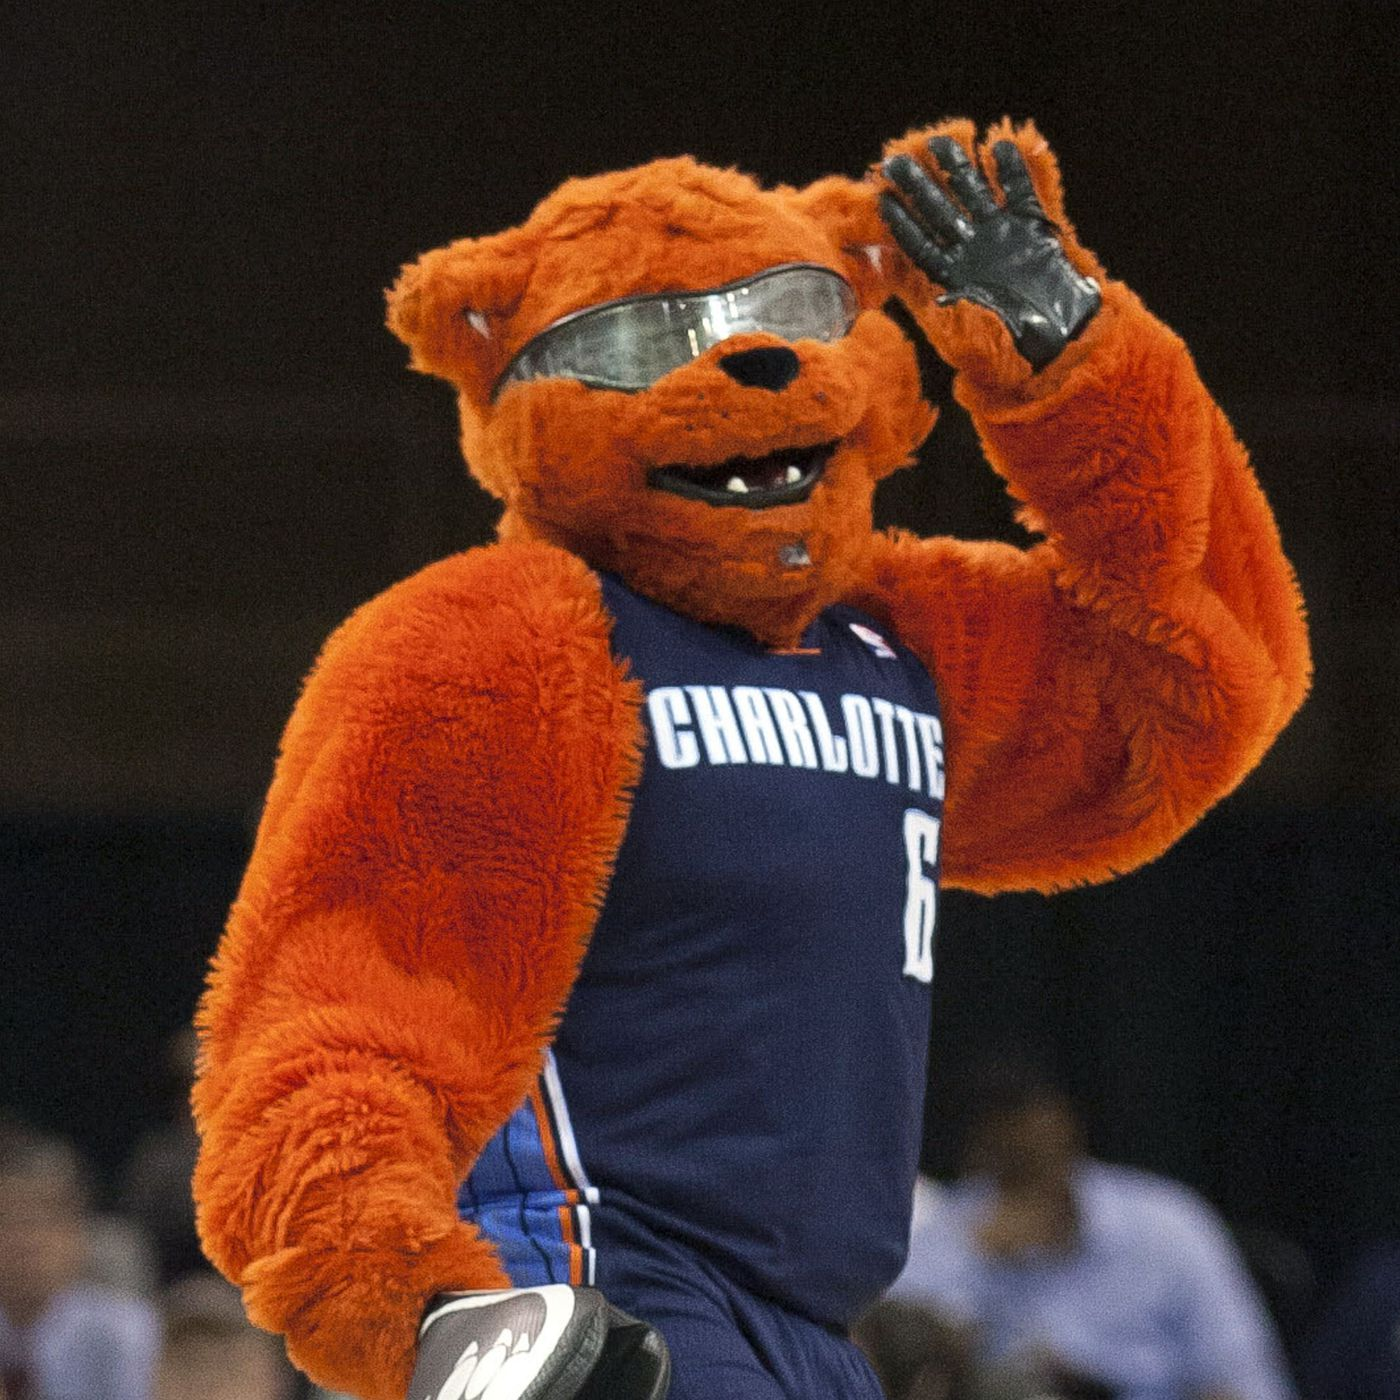 Bobcats Original Branding Botched By Bob Johnson Constant Change Wrist Bear Red At The Hive